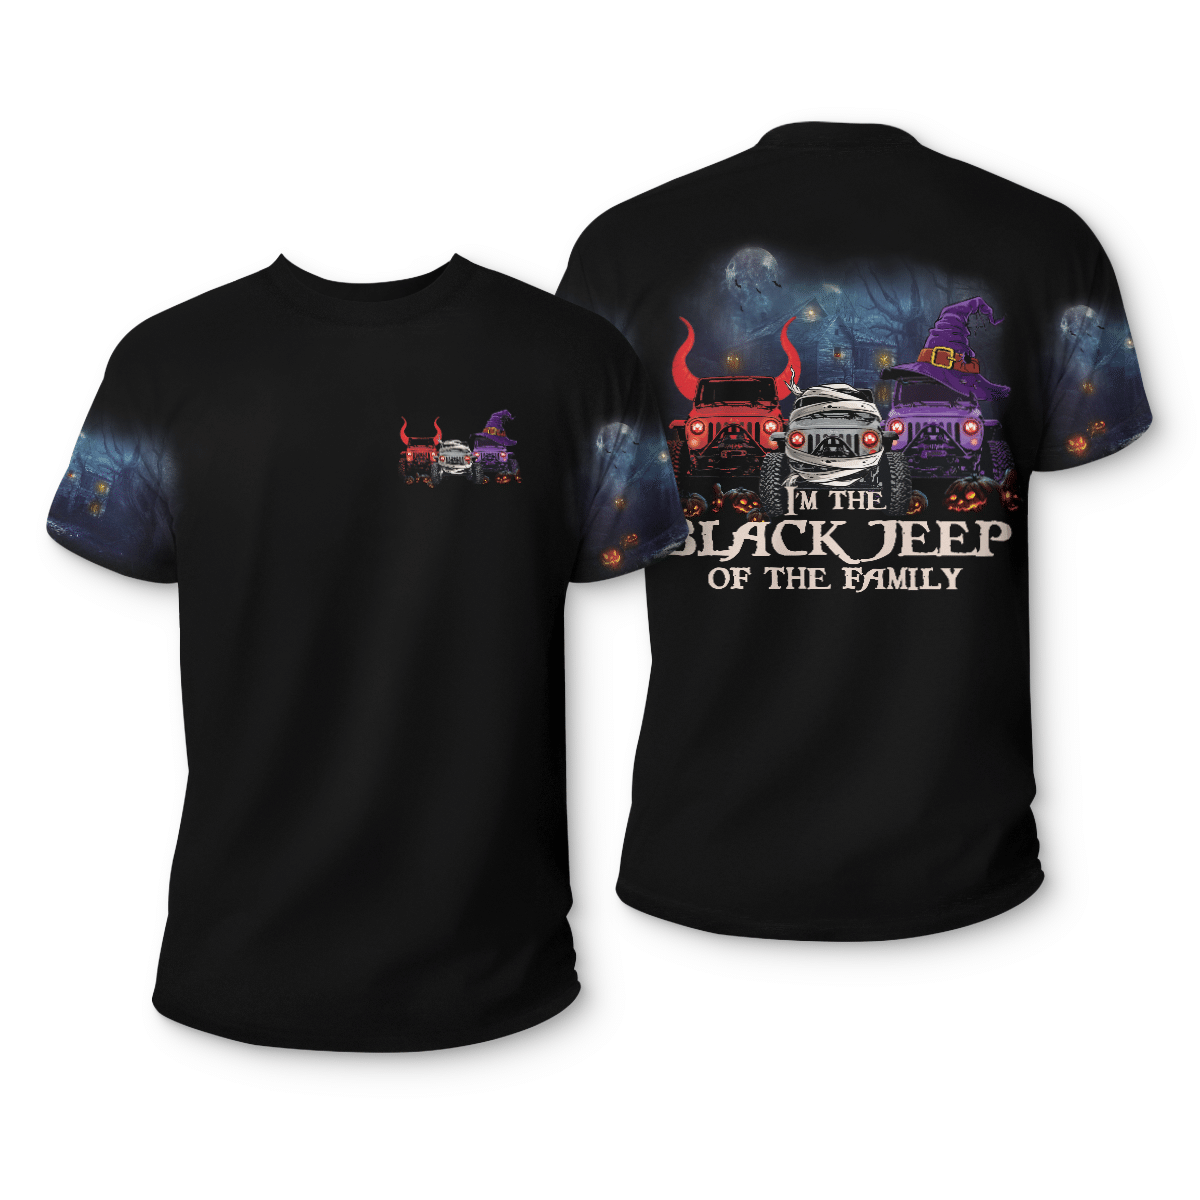 Im a black jeep of the family 3d T shirt 1